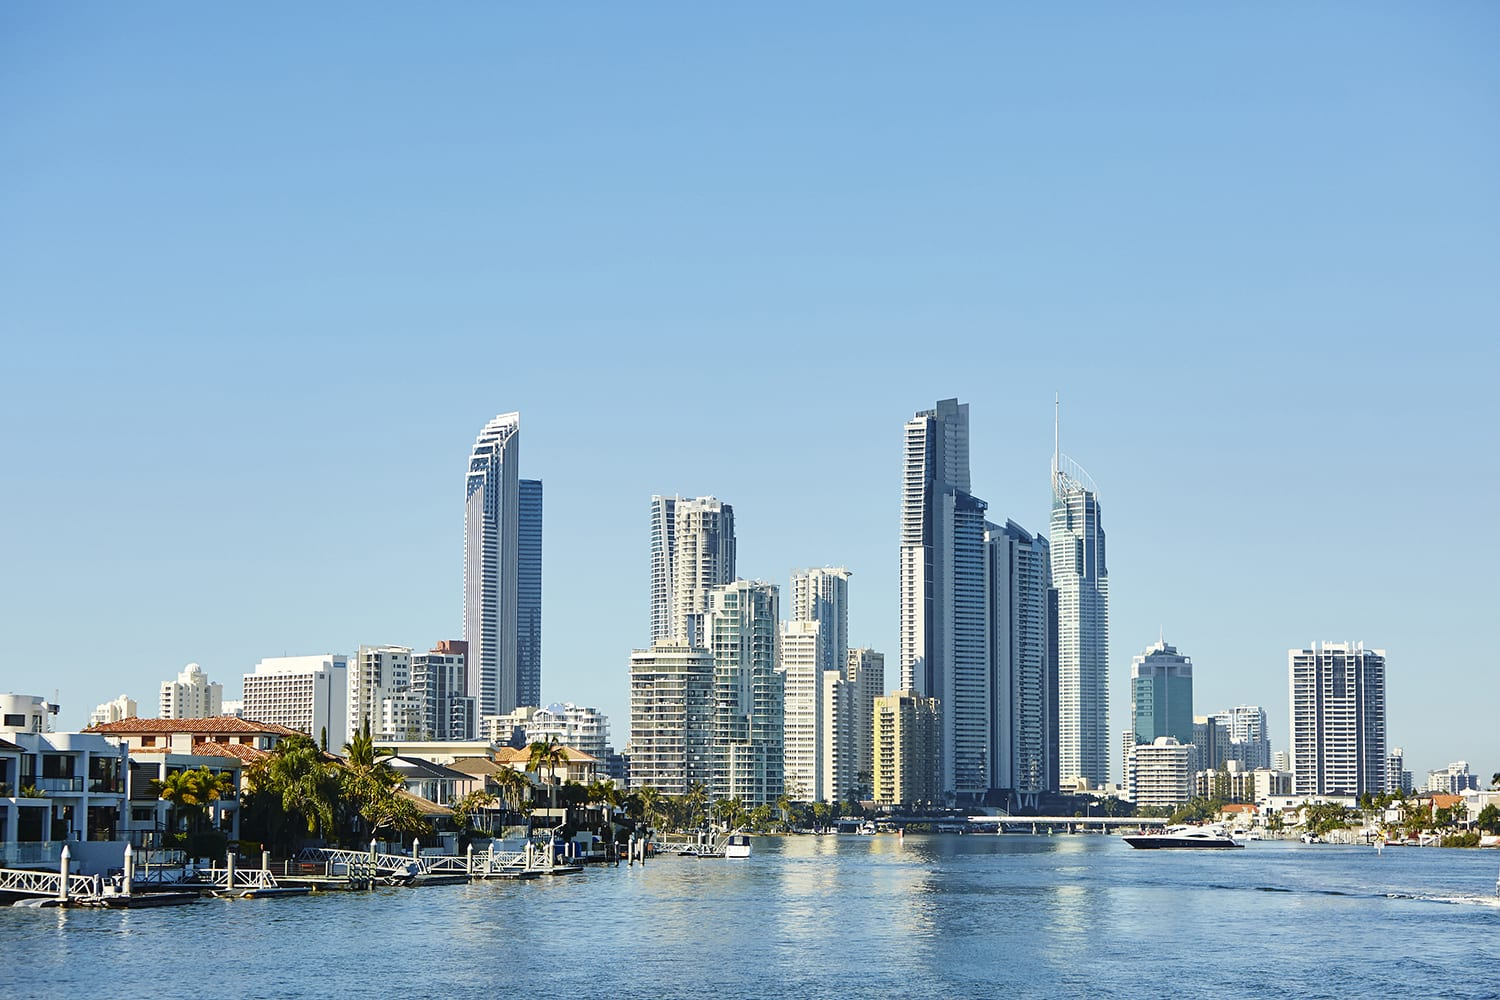 Surfers Paradise & Broadwater Sightseeing Cruise, Surfers Paradise - Morning Cruise